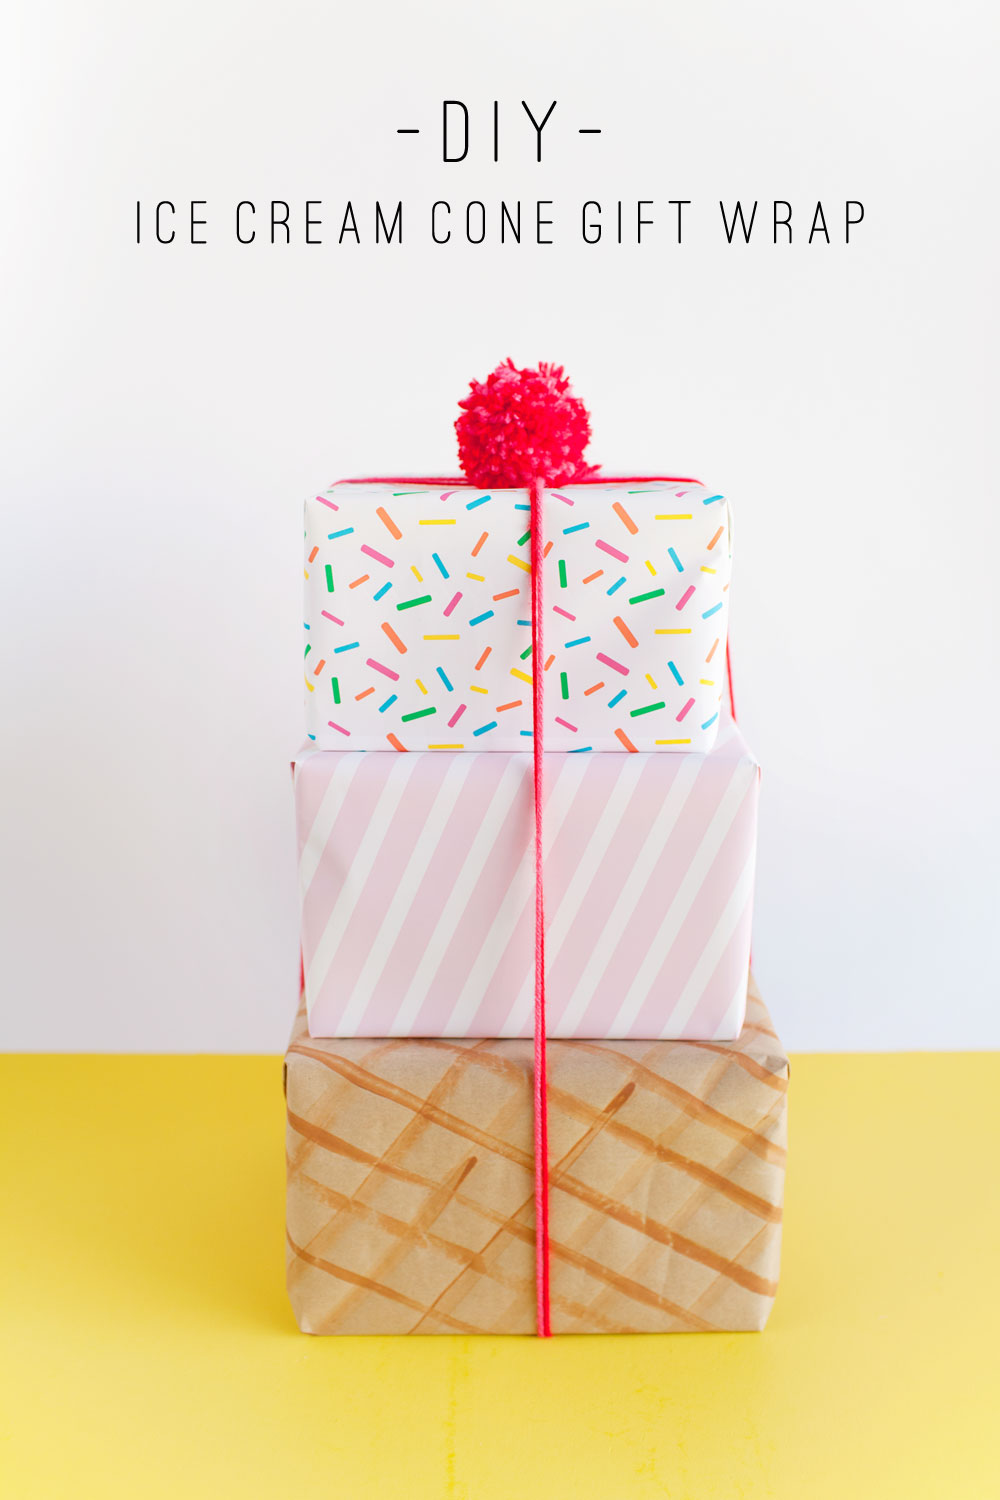 diy-ice-cream-cone-gift-wrap